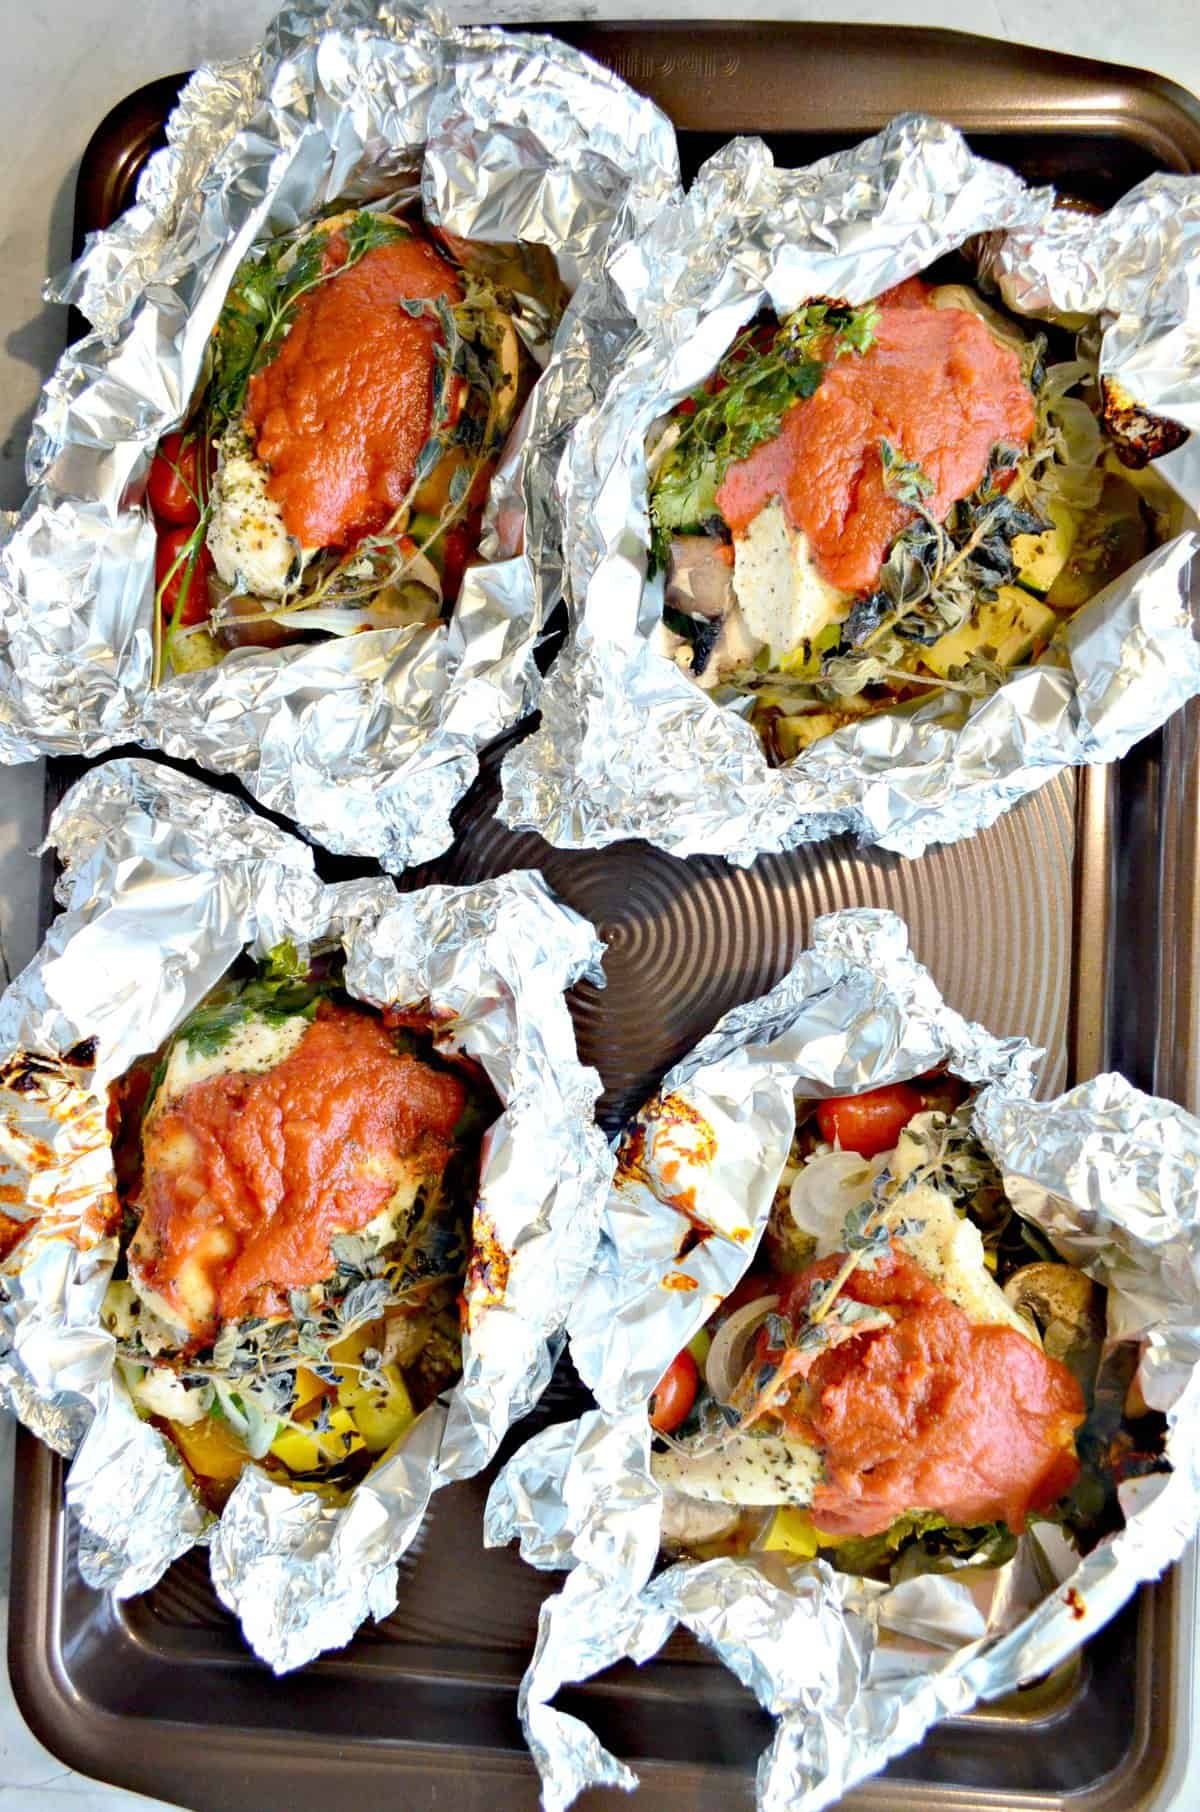 close up of 4 pieces of chicken in an open foil with herbs and red sauce.